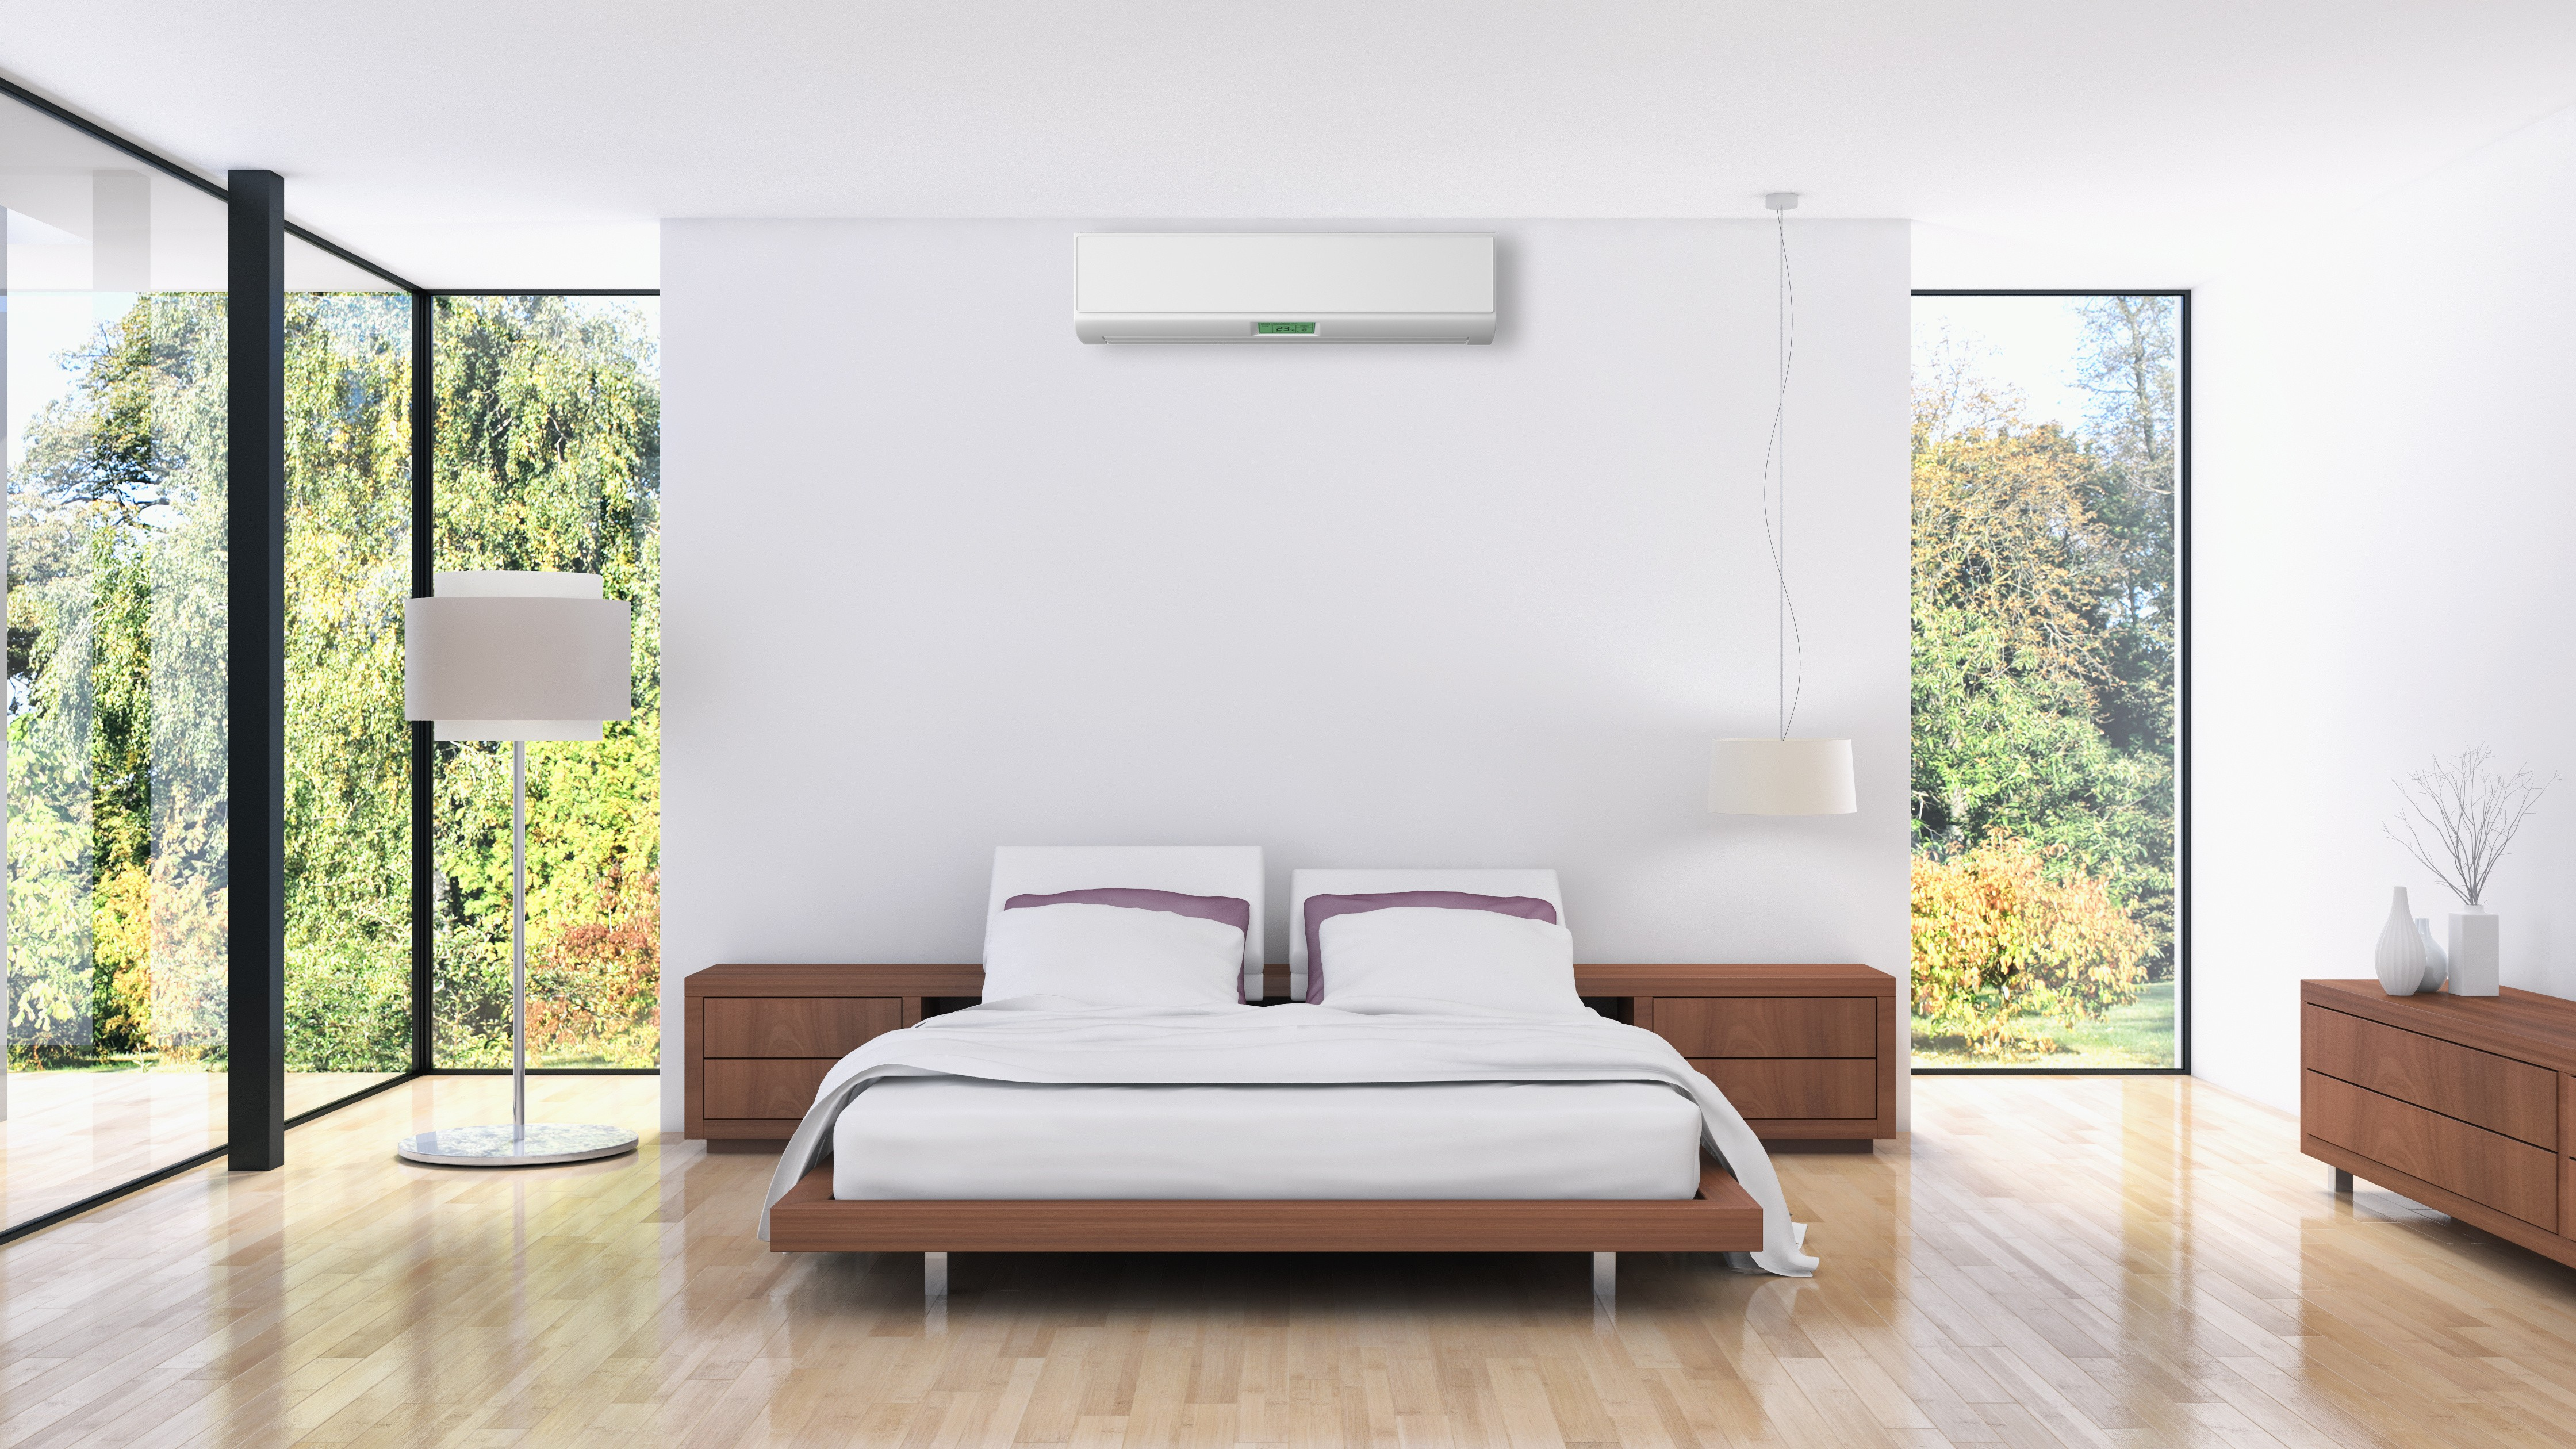 Residential Air Conditioning: Tips to Help You Save Money